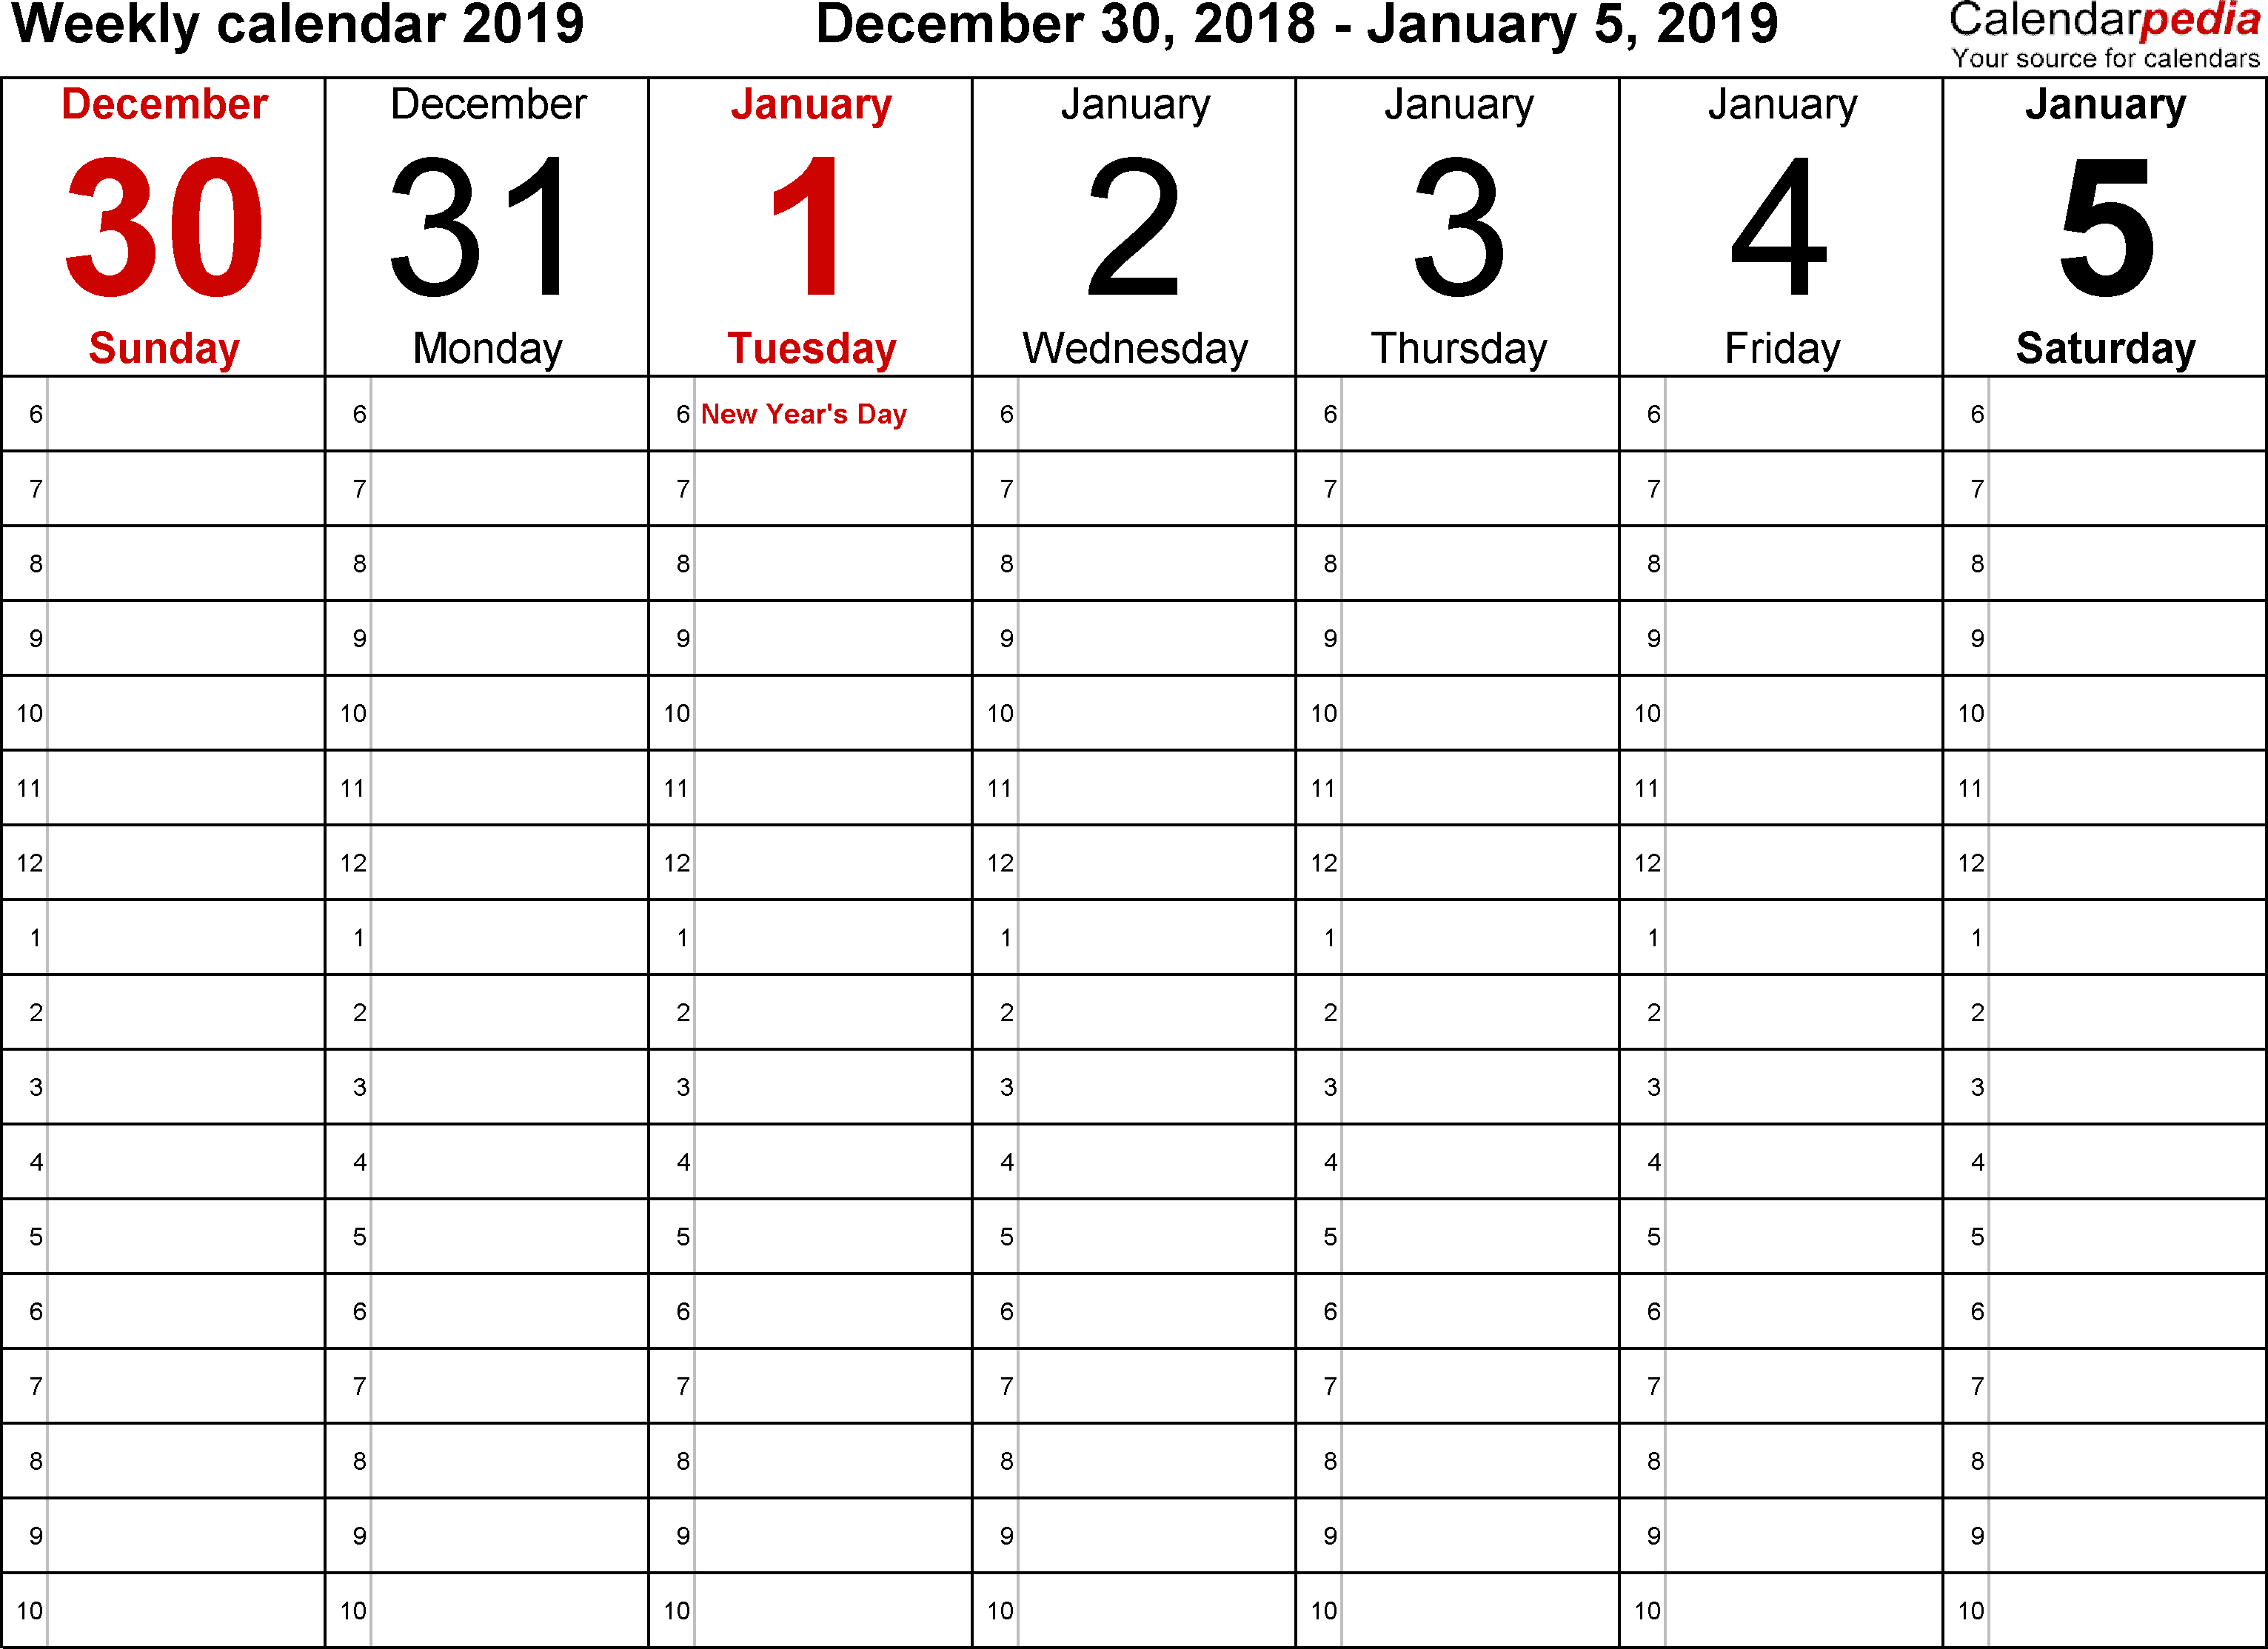 Weekly Calendar 2019 For Word - 12 Free Printable Templates with One Week Calendar Template Printable